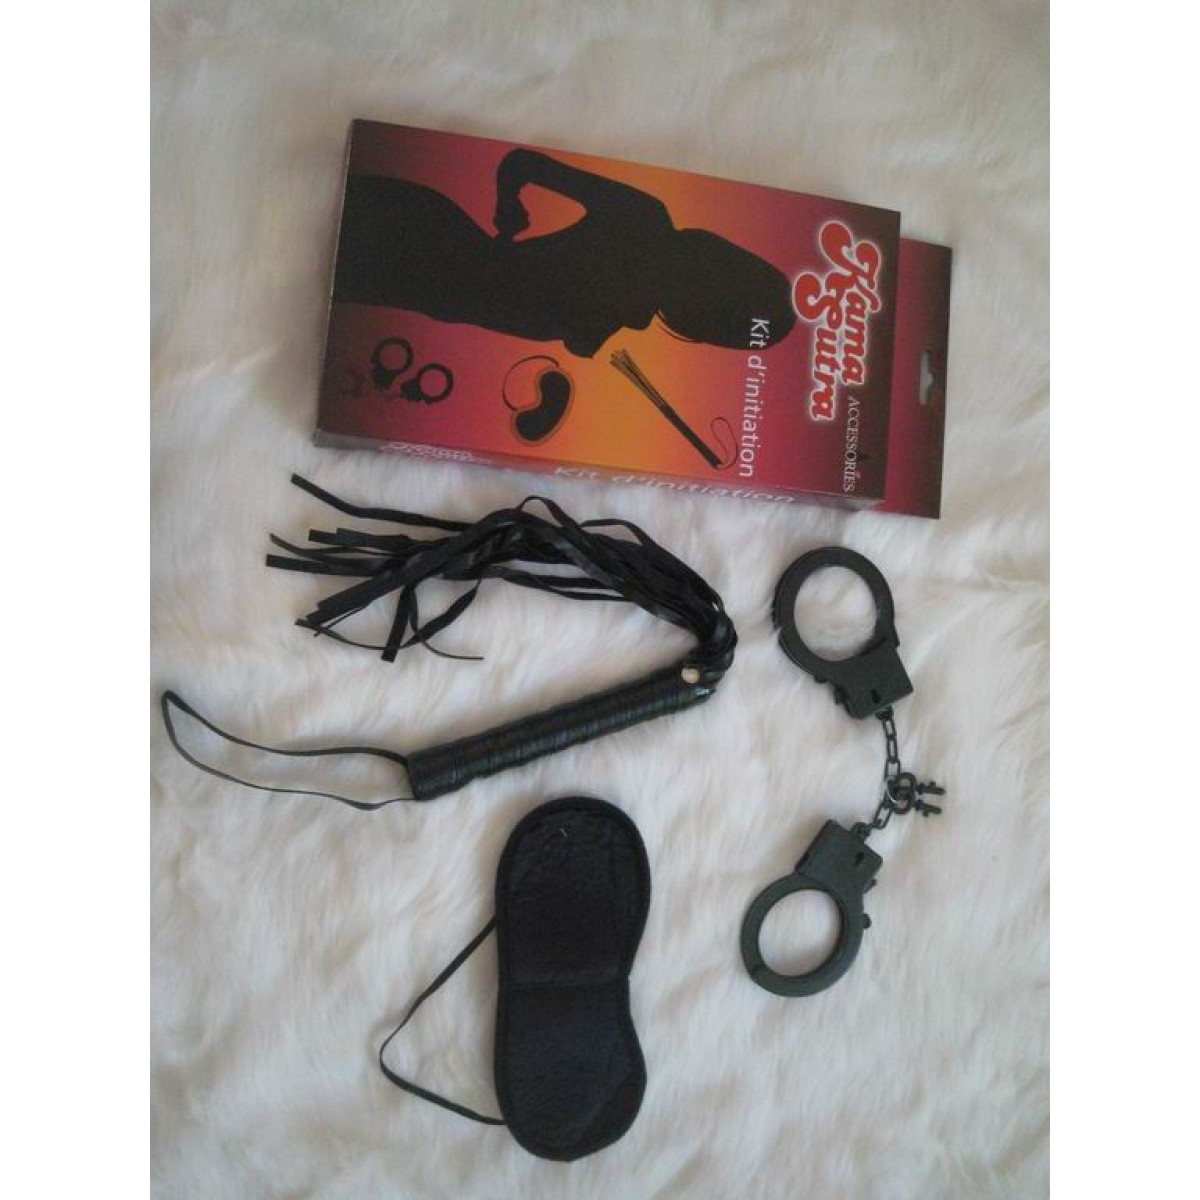 Gojilove love and play more 3 pcs BDSM accessories